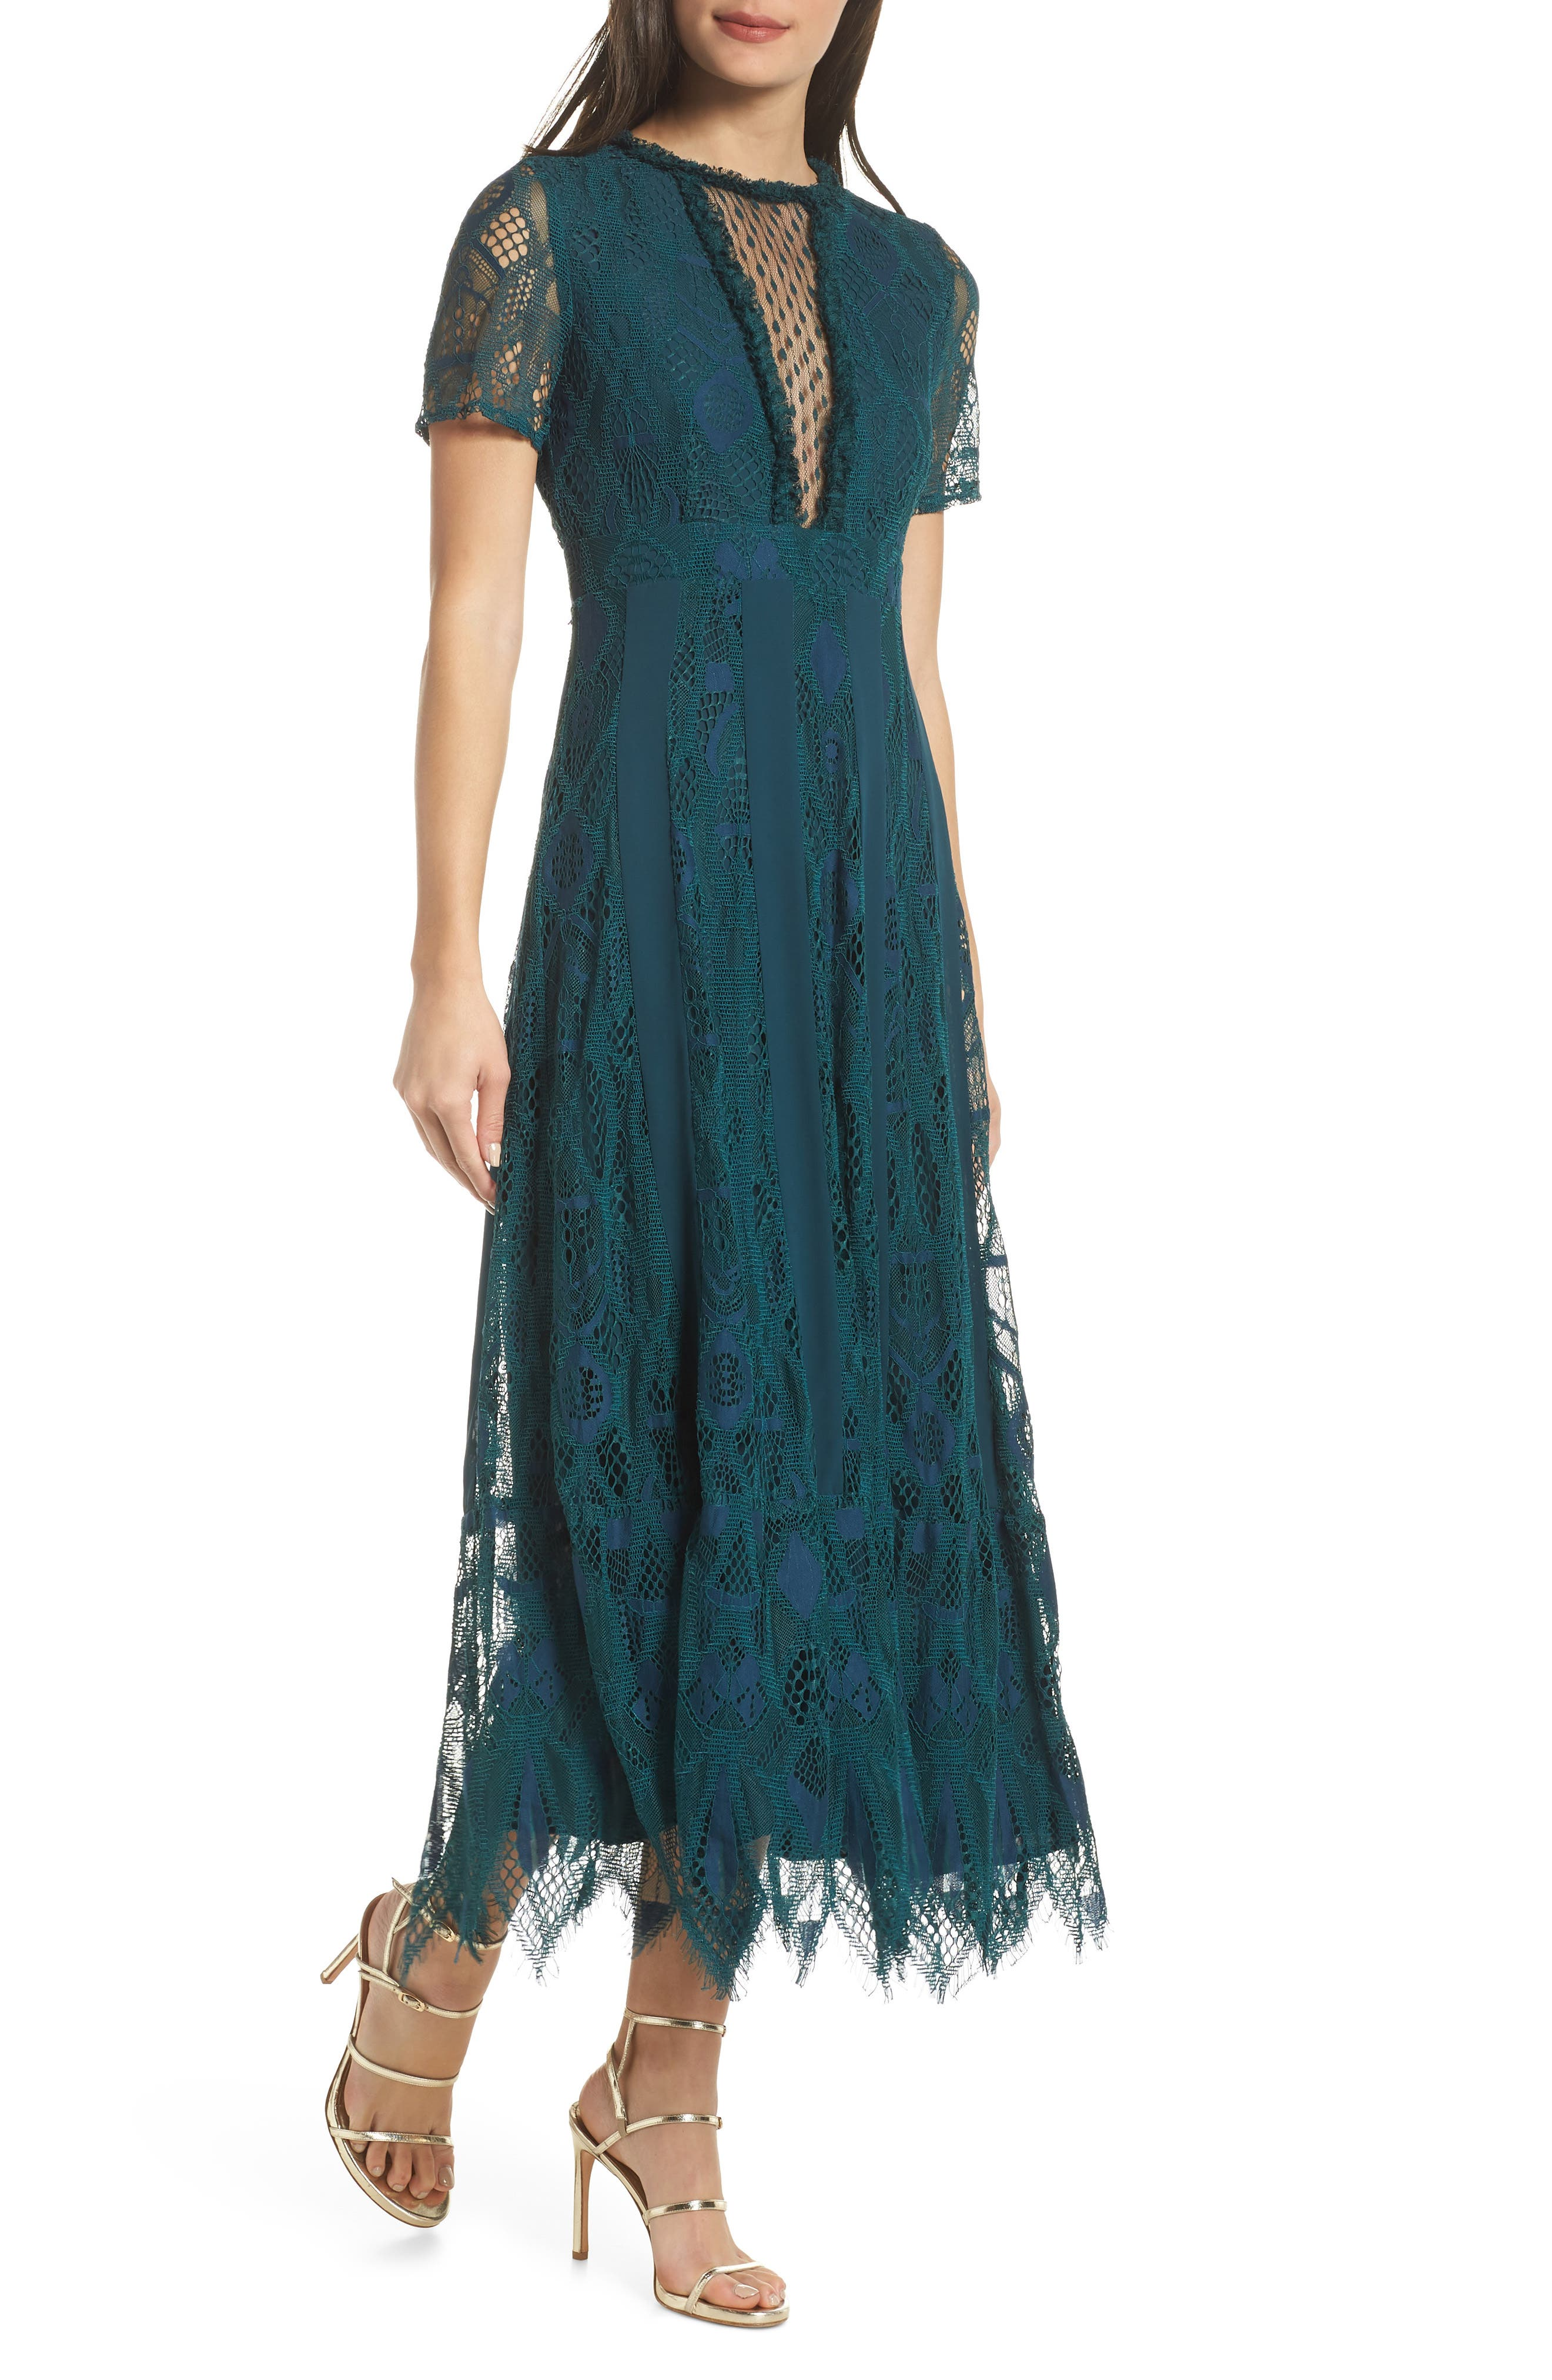 FOXIEDOX Fiona Lace Midi Dress in Tempo Teal